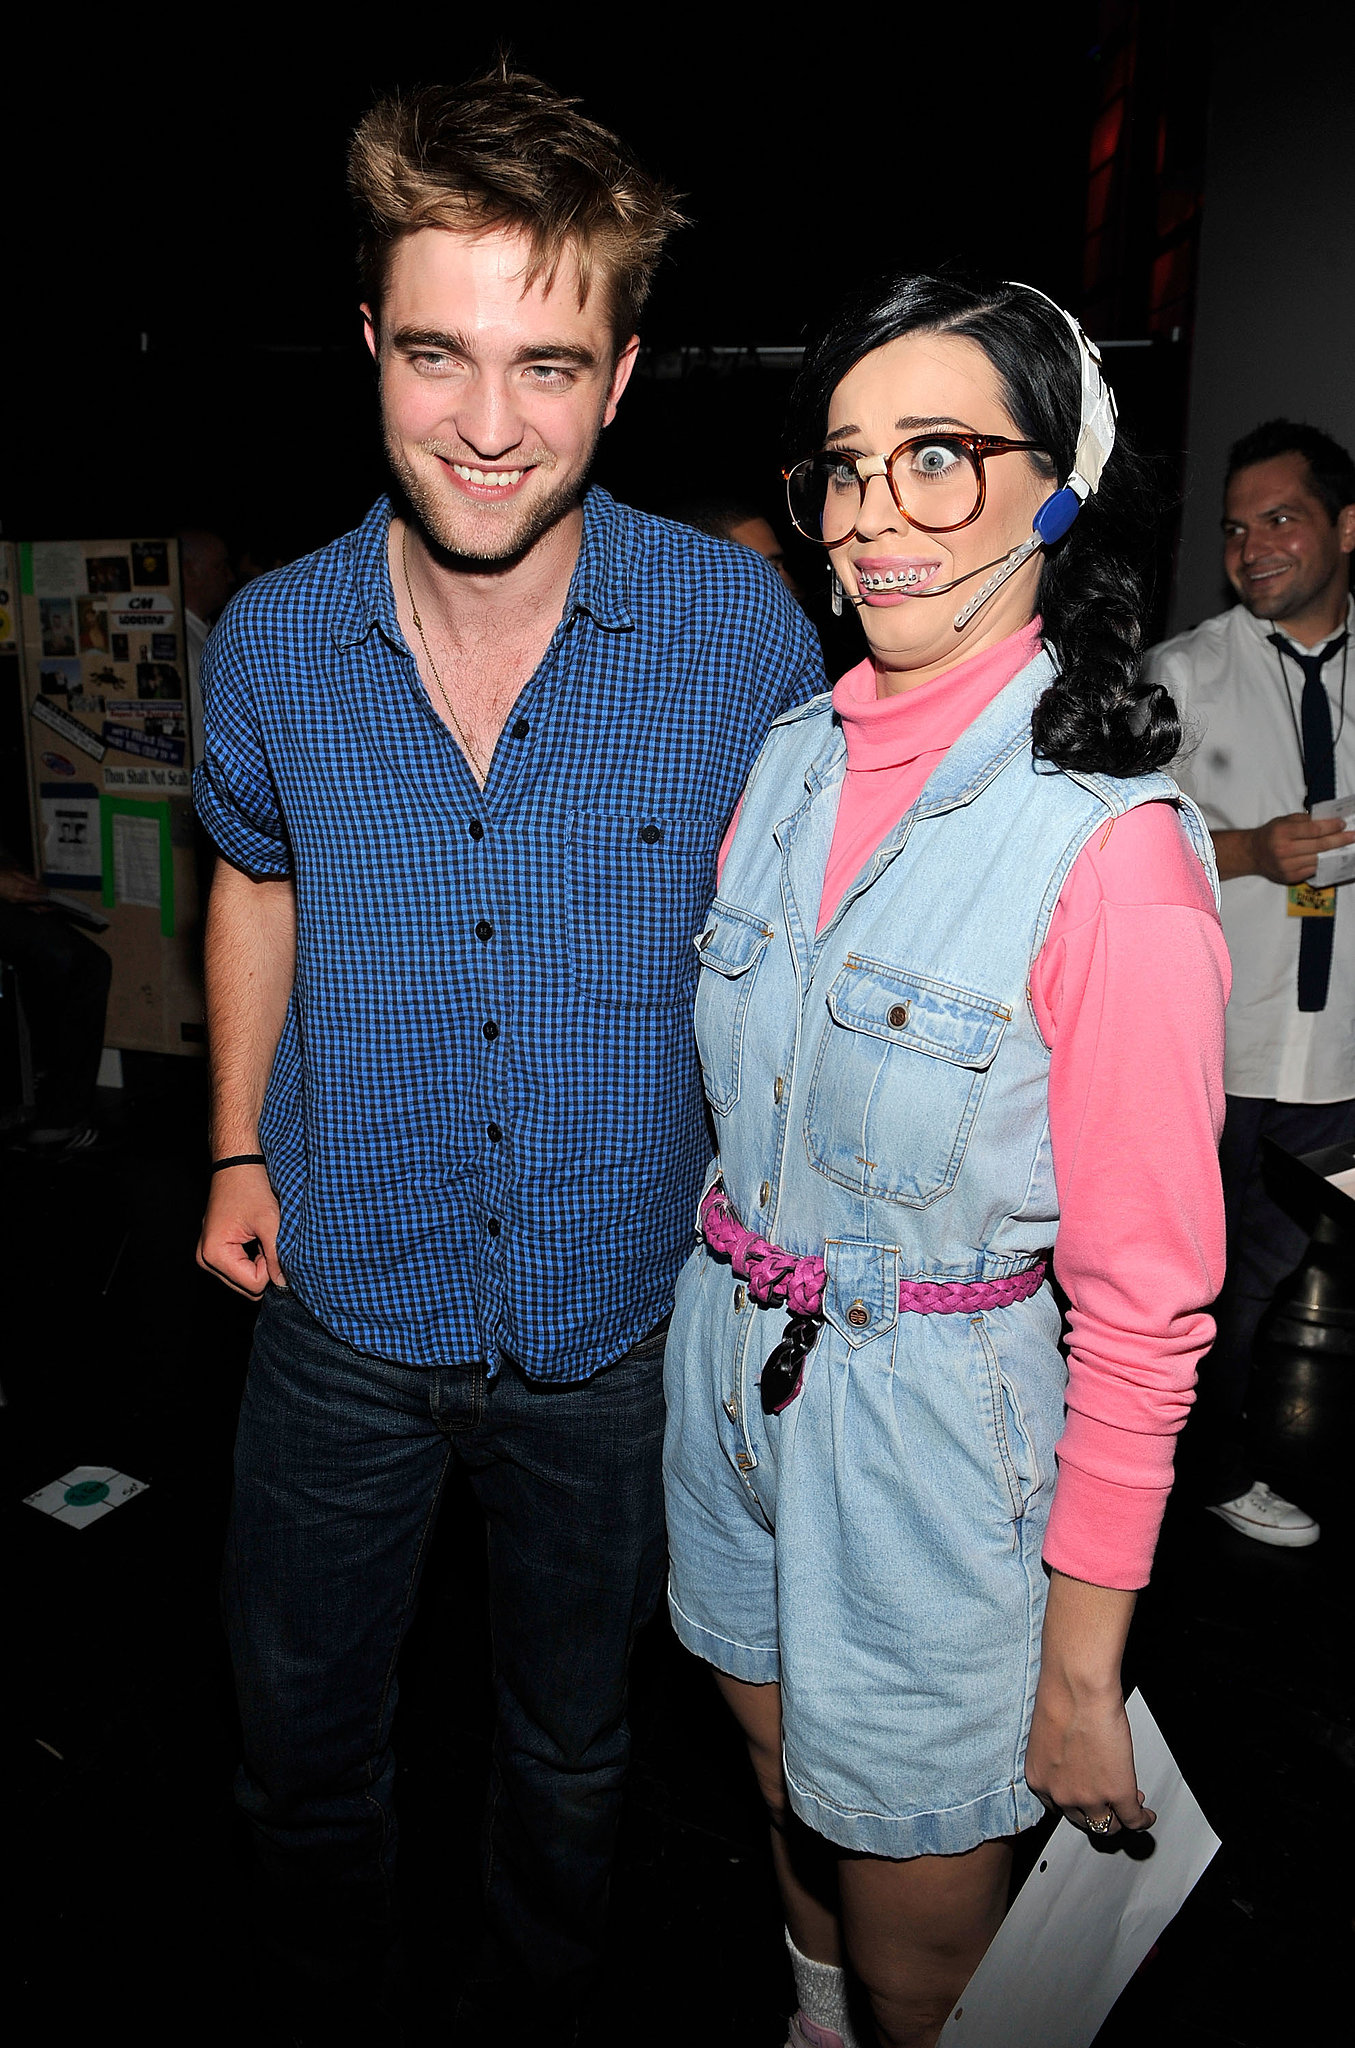 Katy Perry is close friends with Robert Pattinson, and she reportedly provided him with a shoulder to lean on when he broke up with Kristen Stewart.